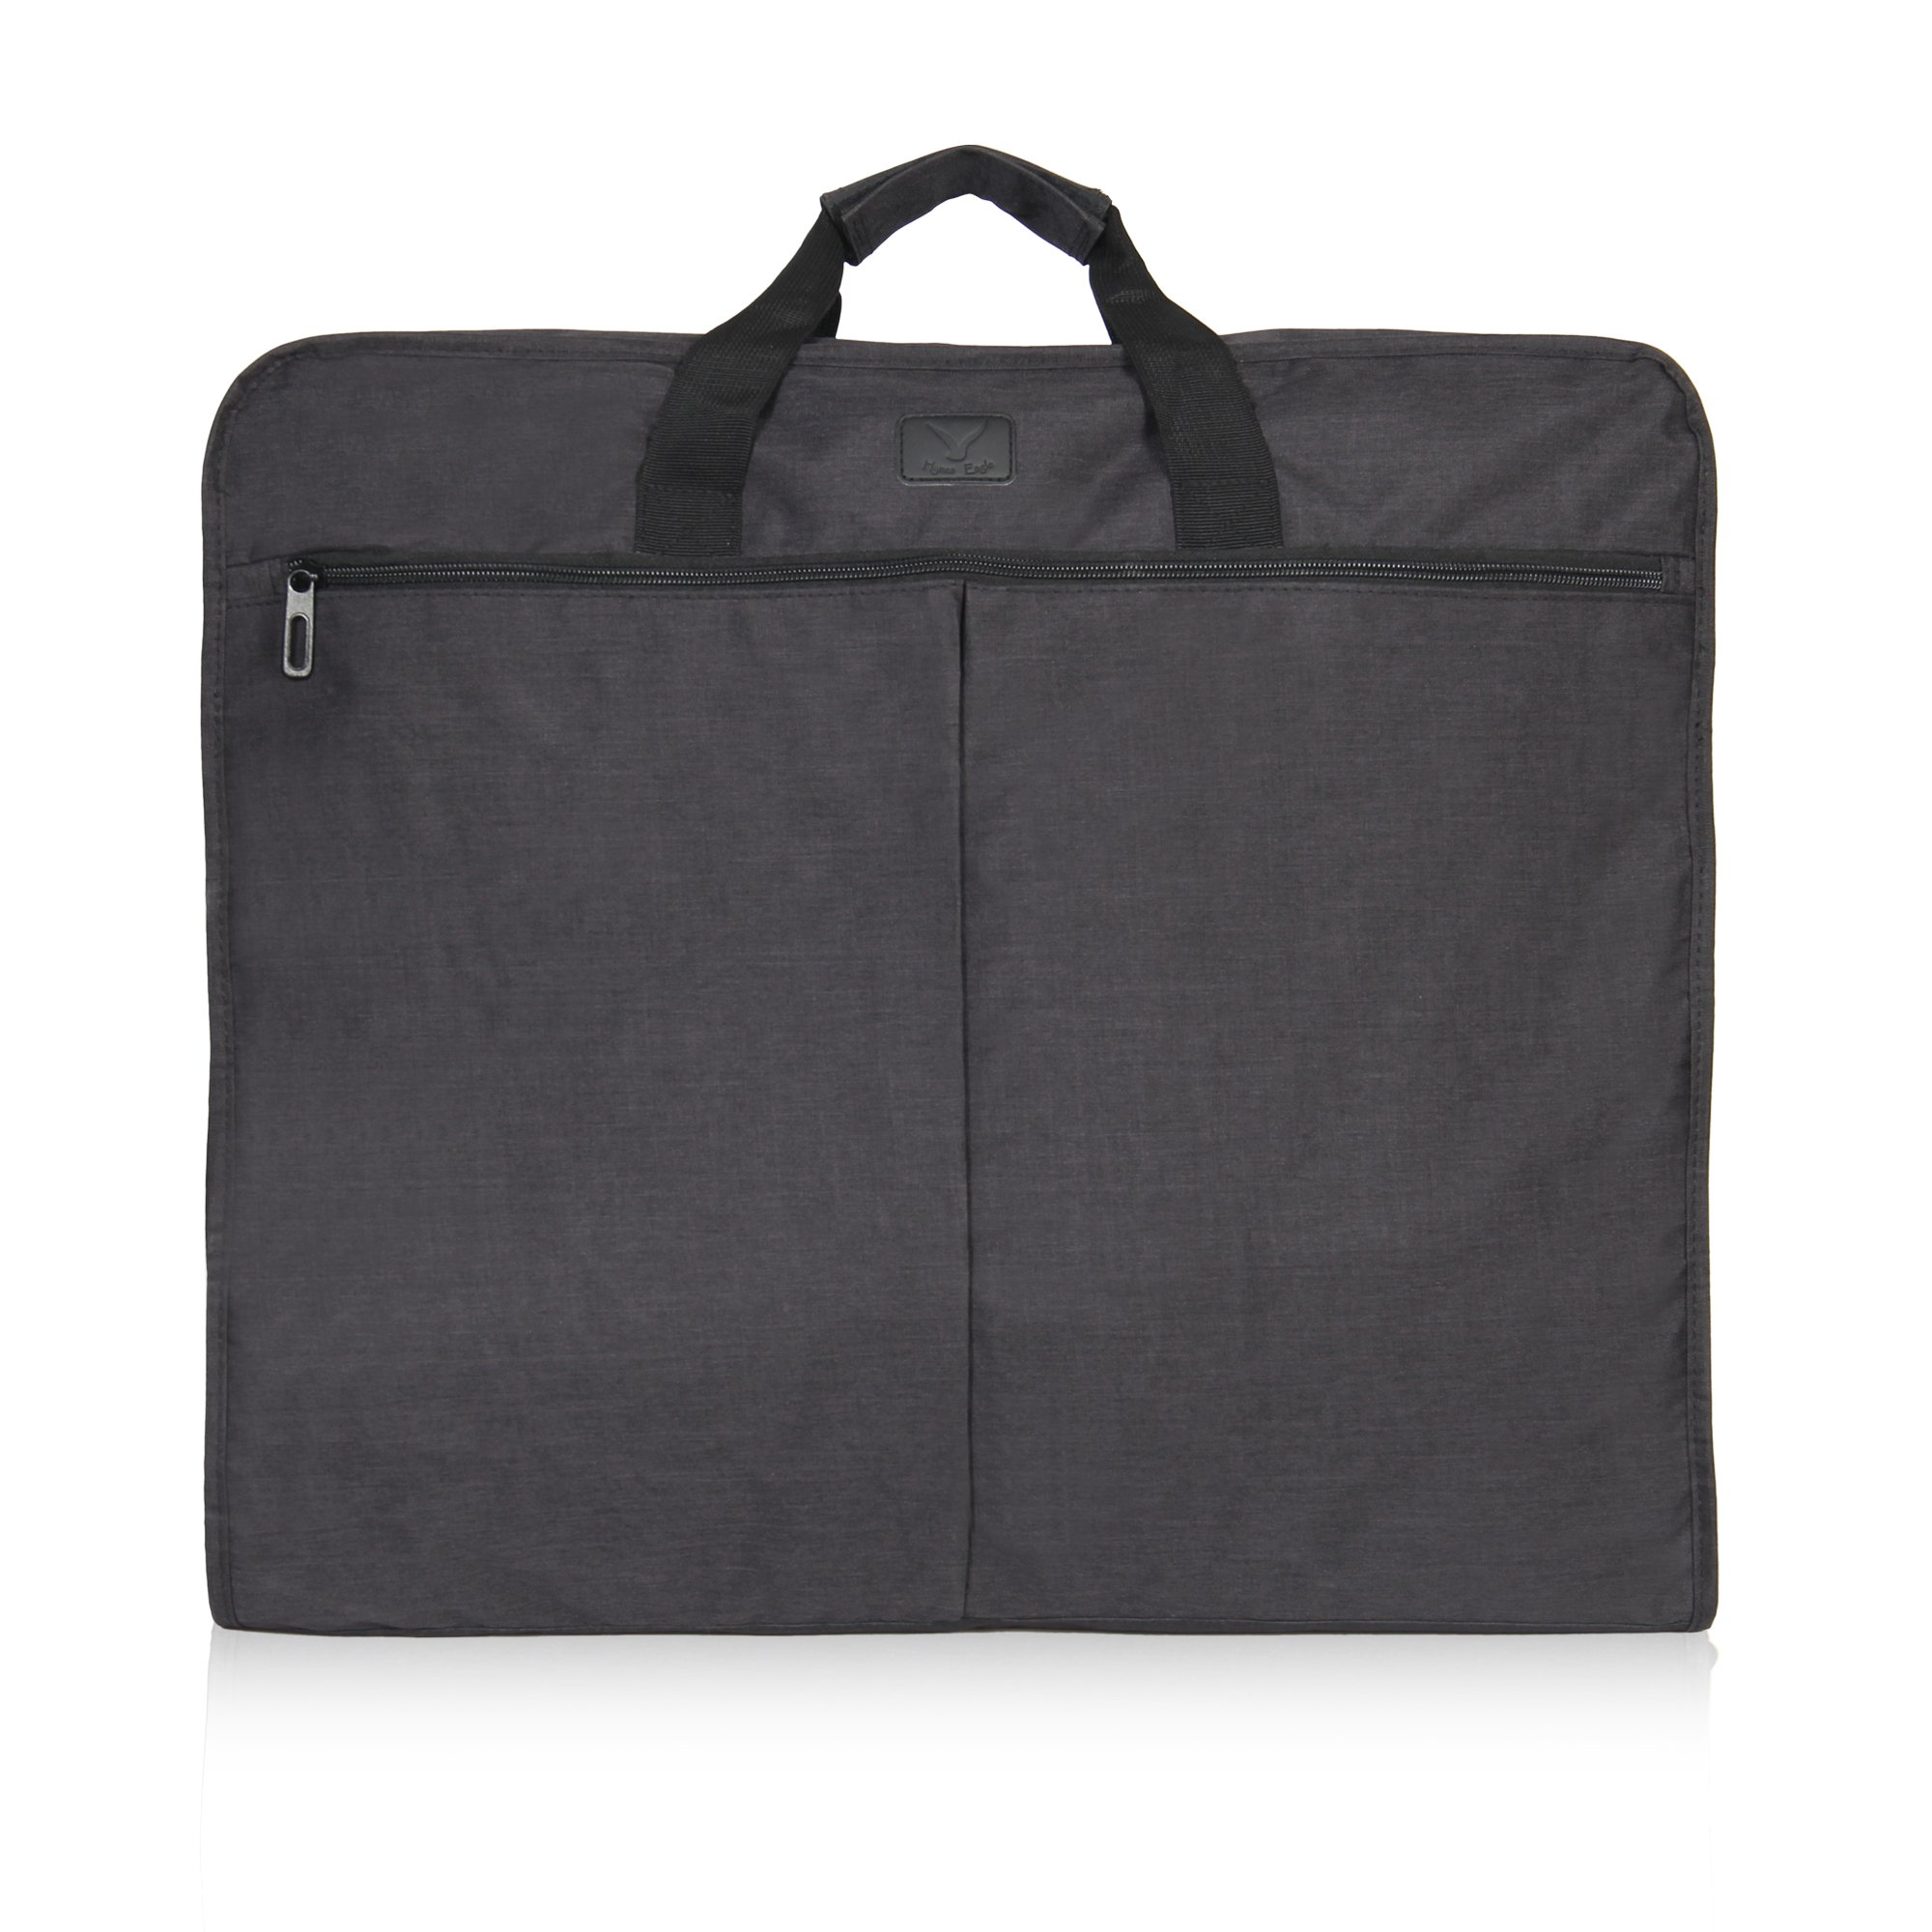 Hynes Eagle 45 inch Portable Garment Bag Hanging Travel Foldable Suit Bag Black by Hynes Eagle (Image #1)